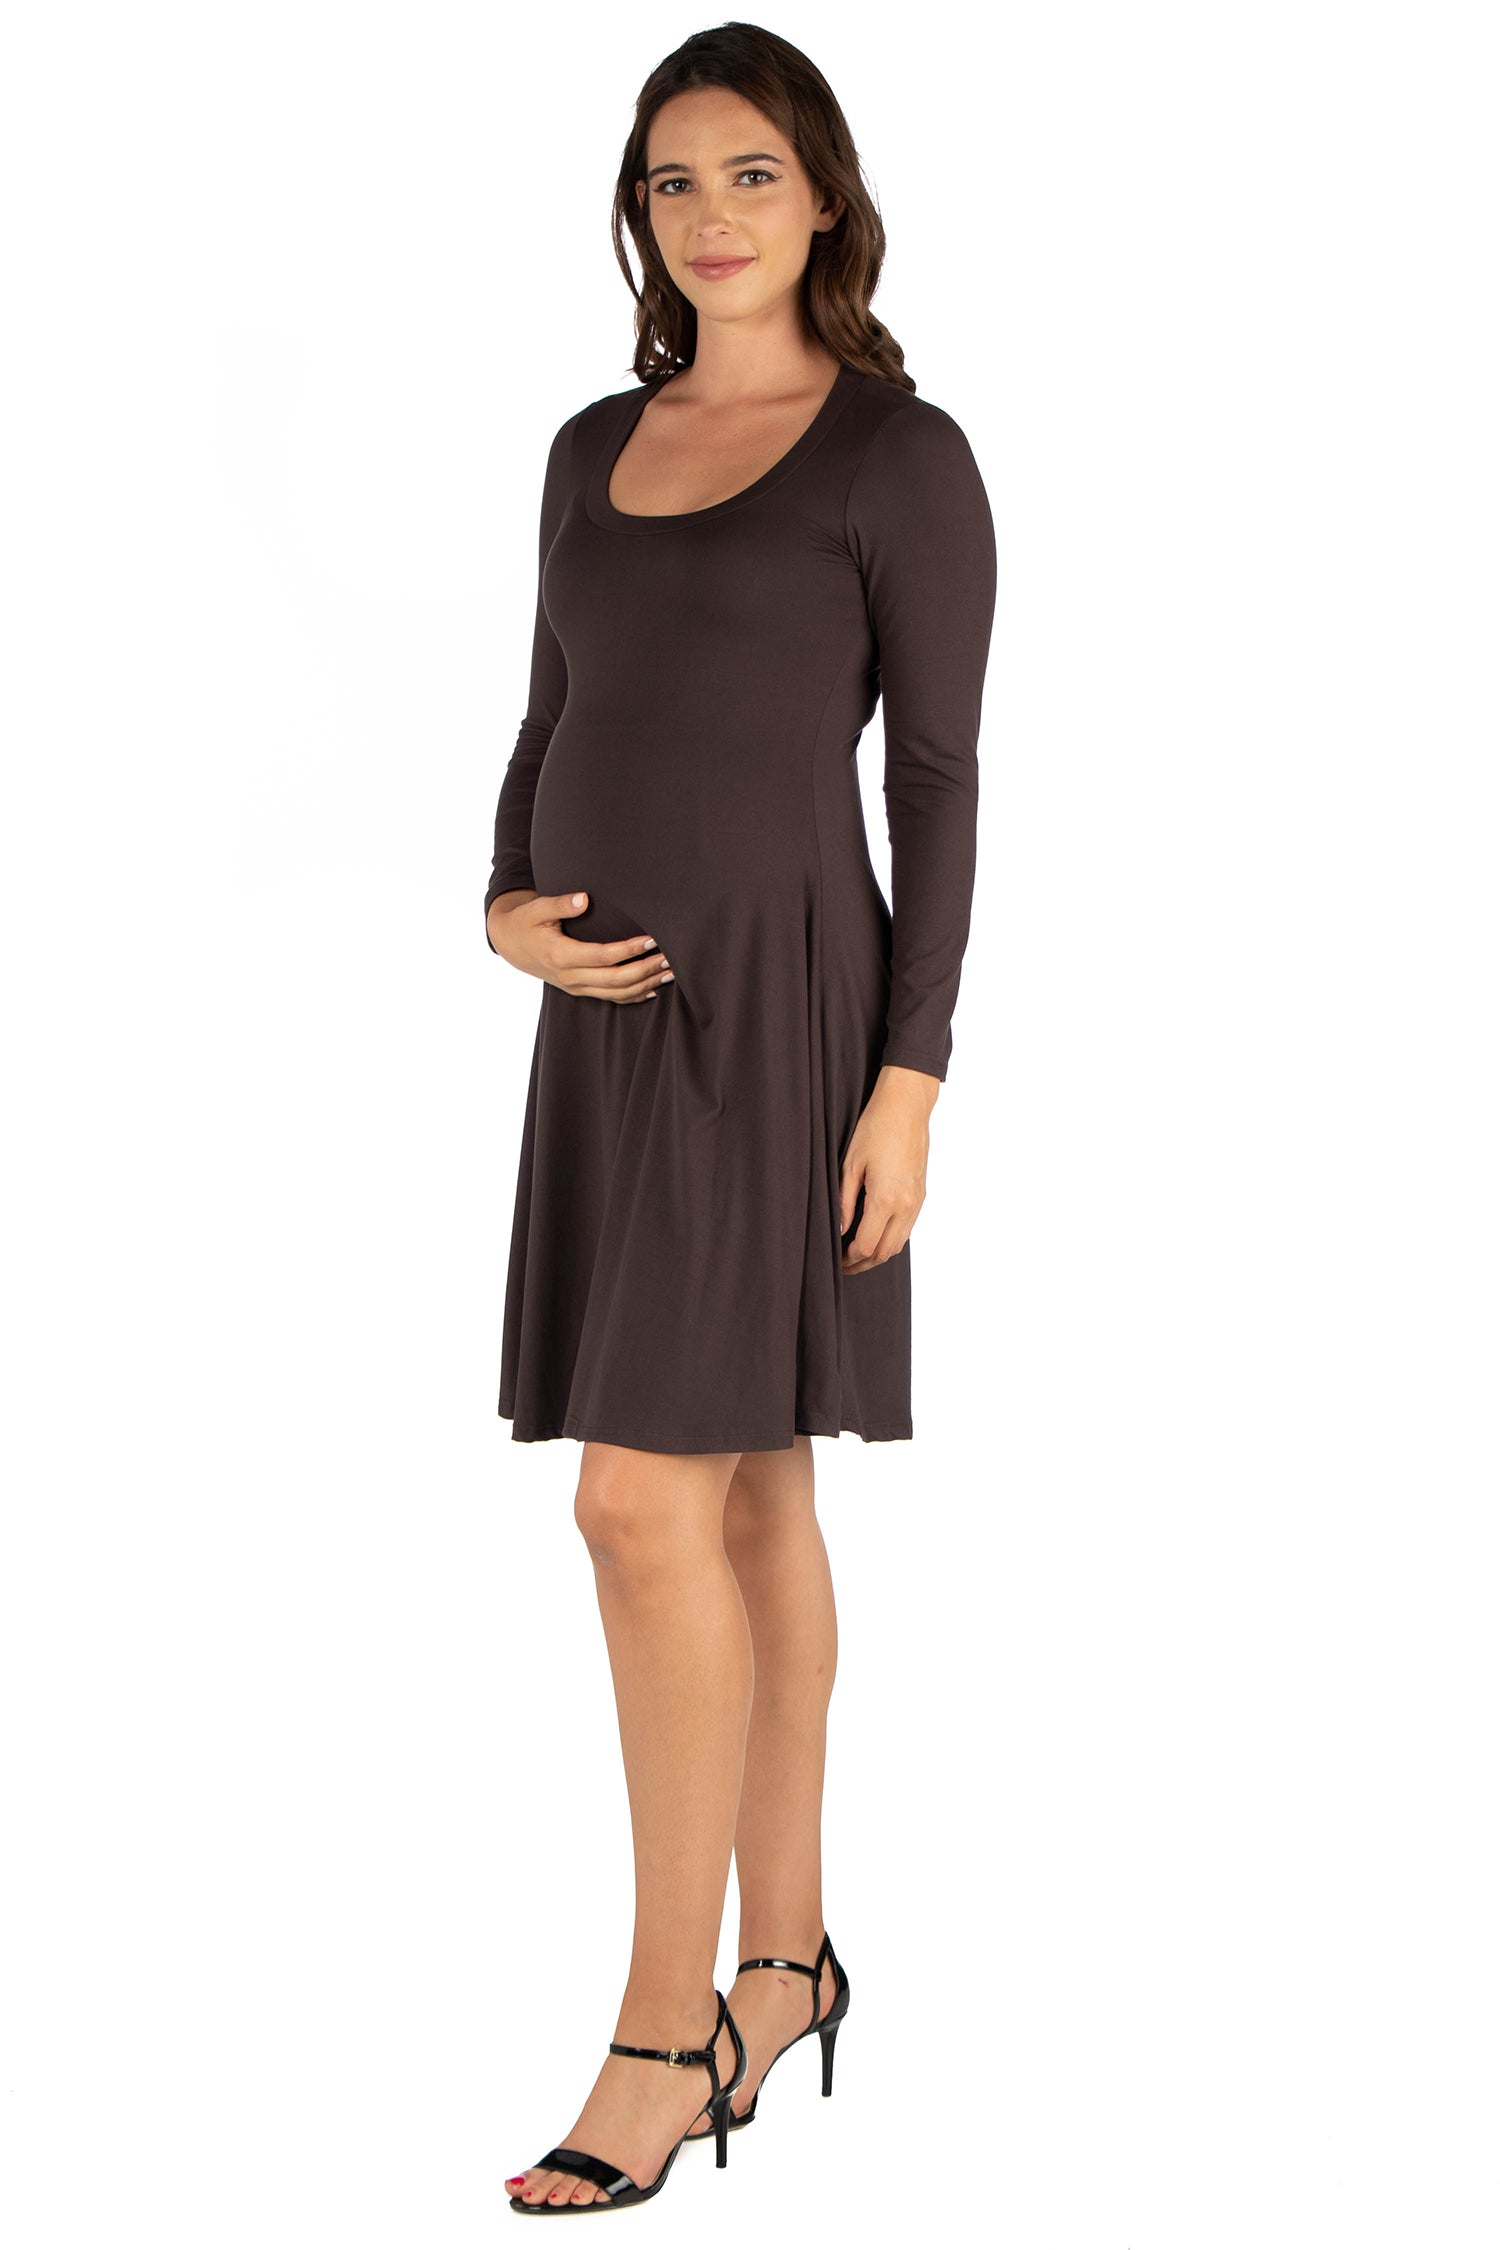 24seven Comfort Apparel Long Sleeve Flared Maternity Mini Dress-DRESSES-24Seven Comfort Apparel-BROWN-1X-24/7 Comfort Apparel